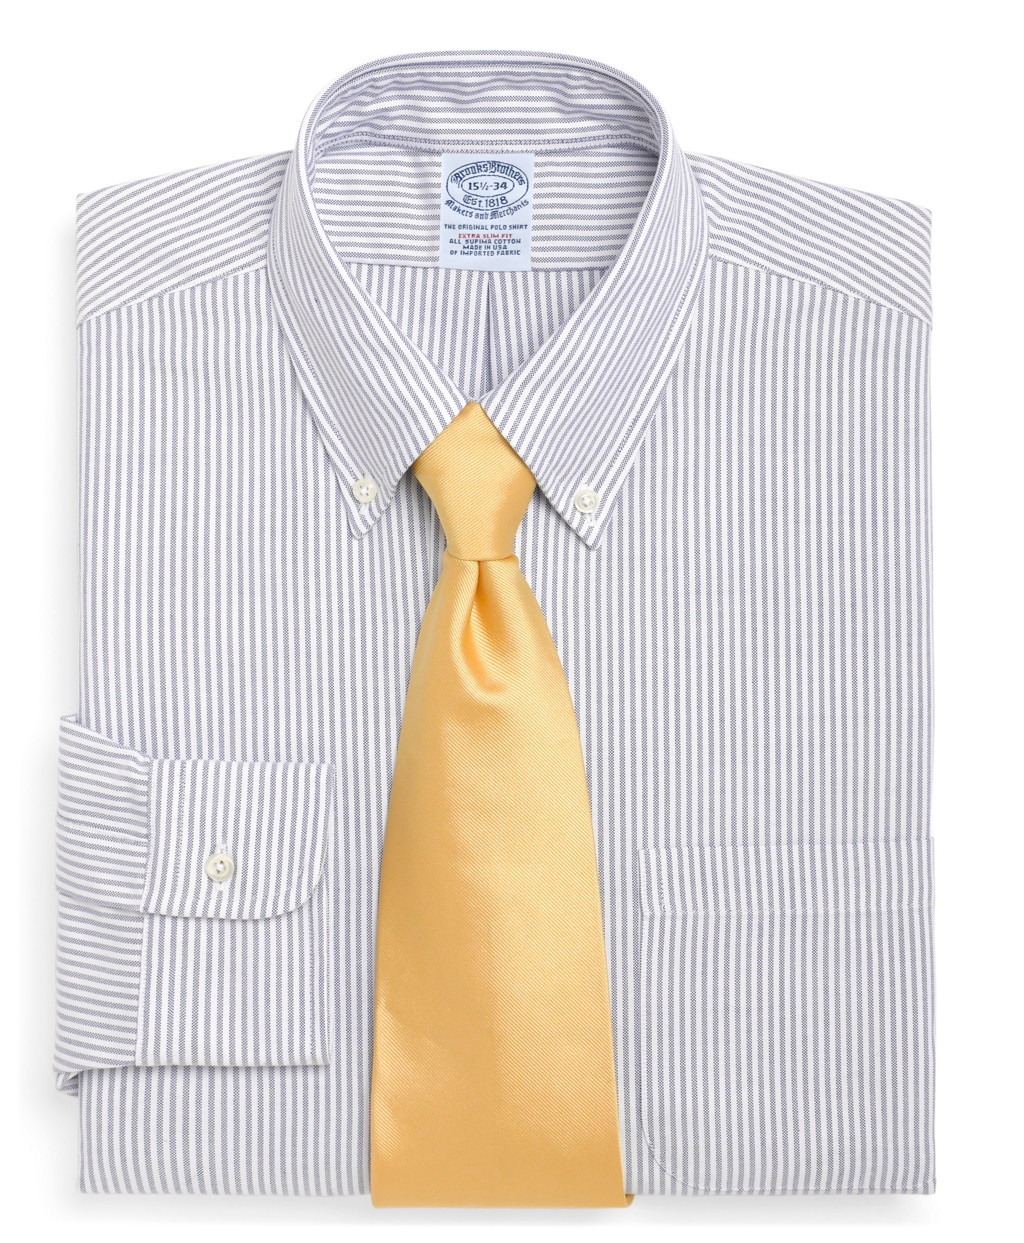 After the denim brooks brothers extra slim fit made in usa for Brooks brothers garland shirt factory